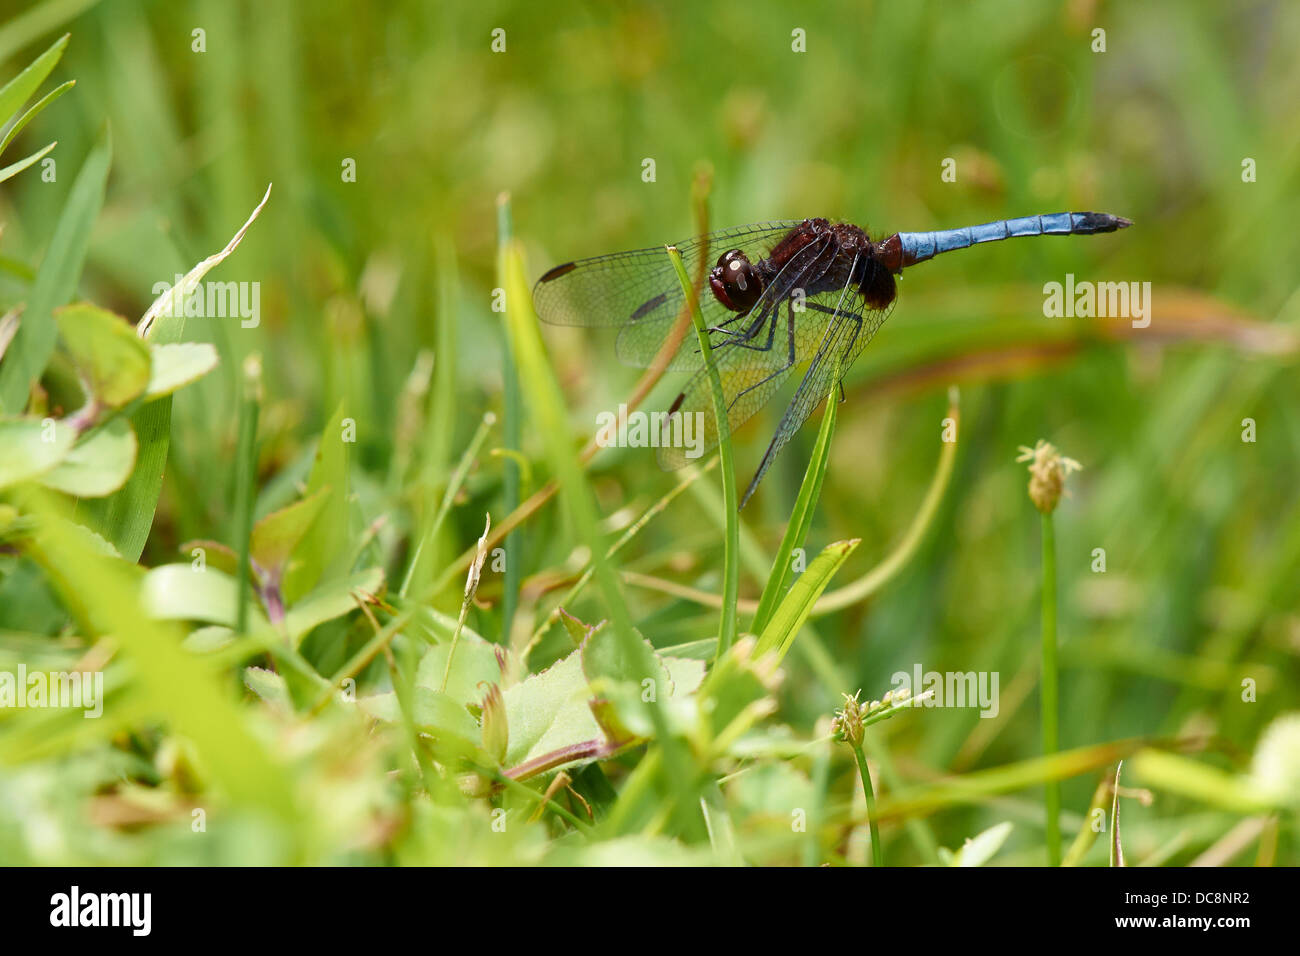 Blue dragonfly on a branch - Stock Image